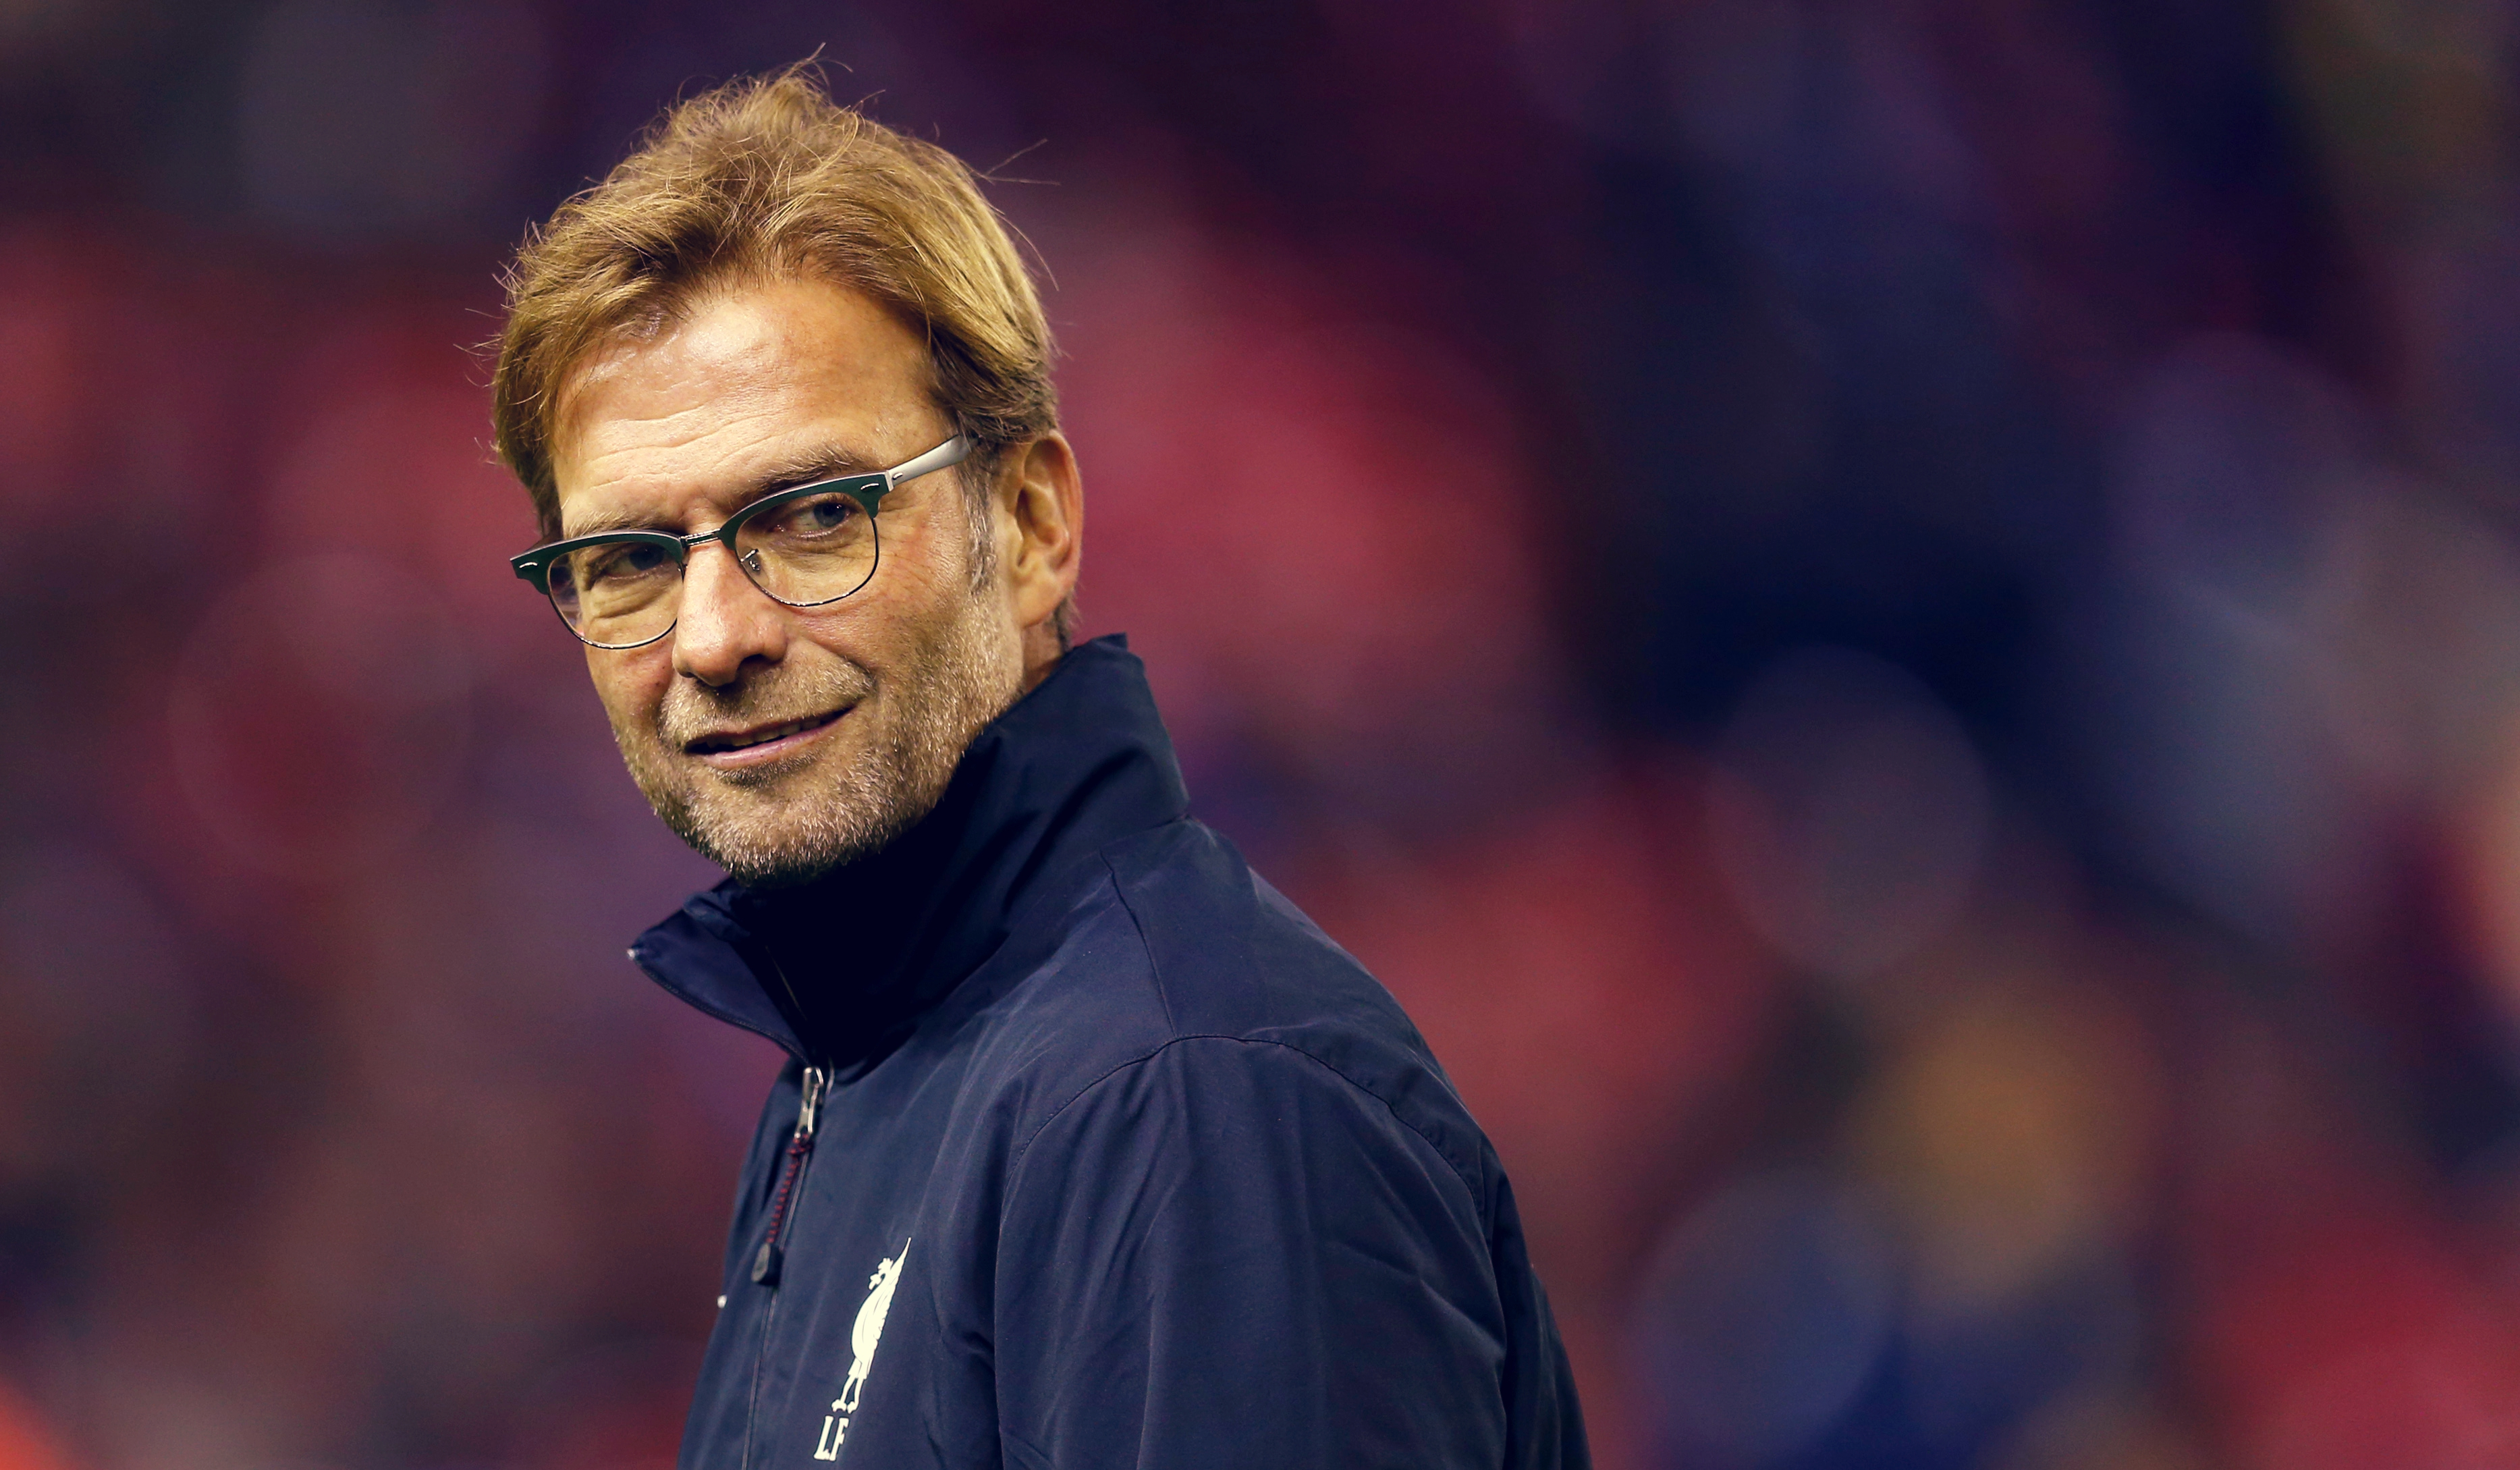 Klopp's Planning On Spending £175m On Players During Deadline Day